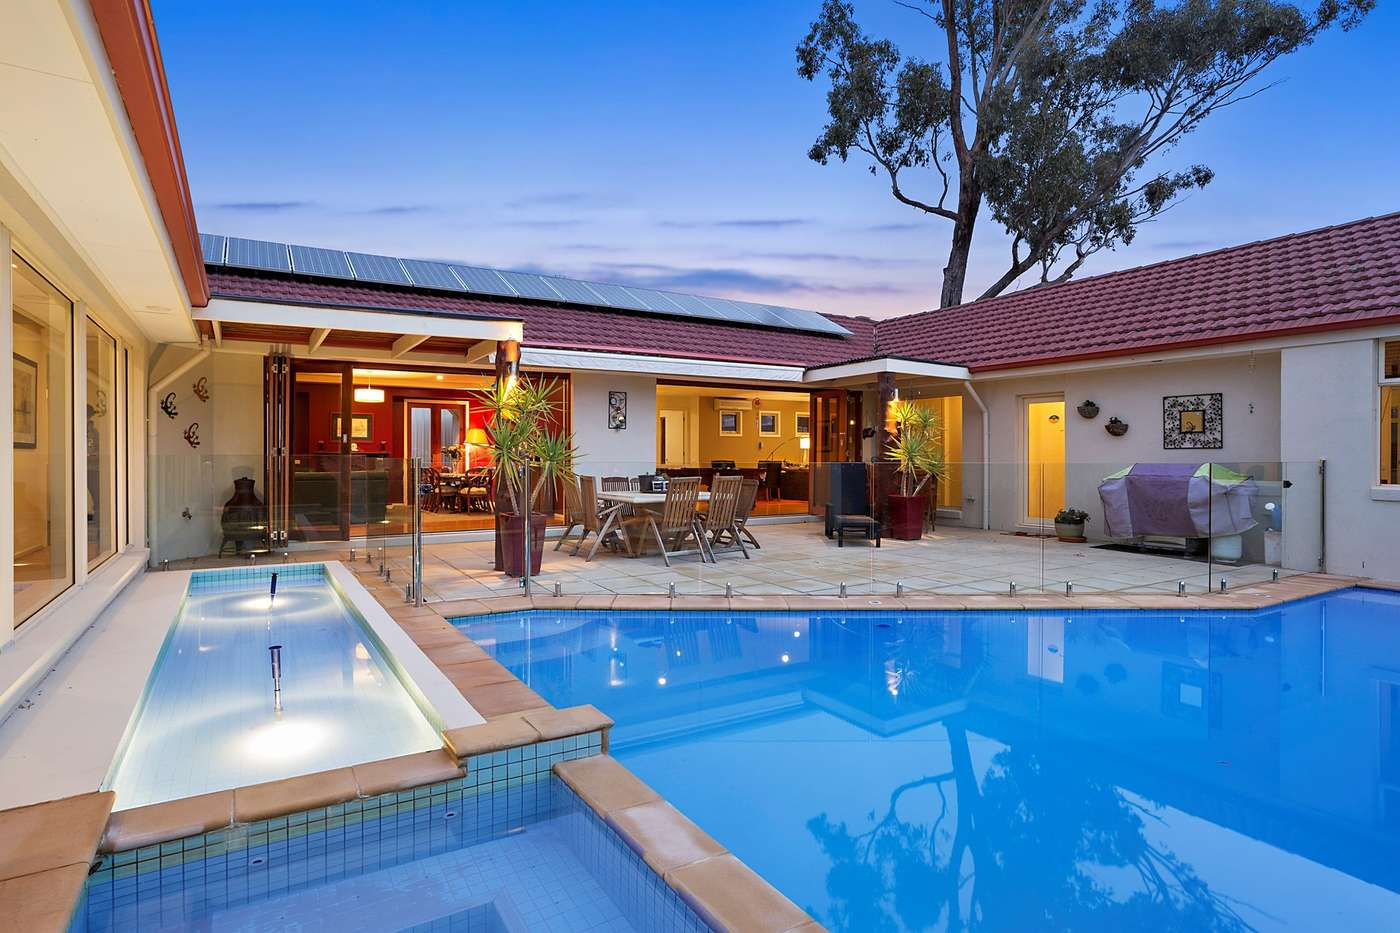 Main view of Homely house listing, 41 Harpin Street, East Bendigo, VIC 3550